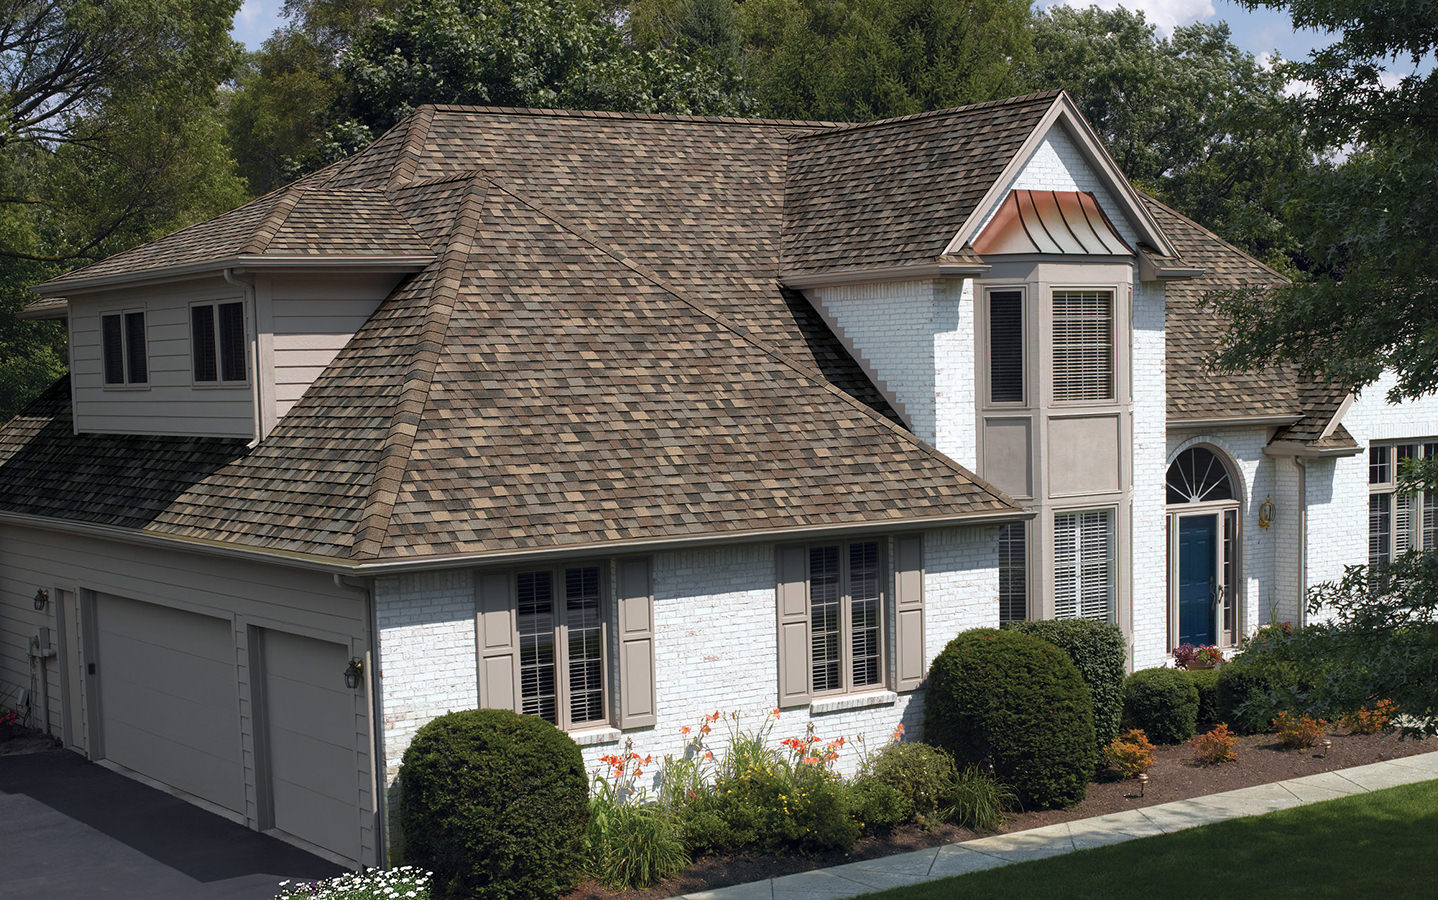 What makes a great shingled roofing system?